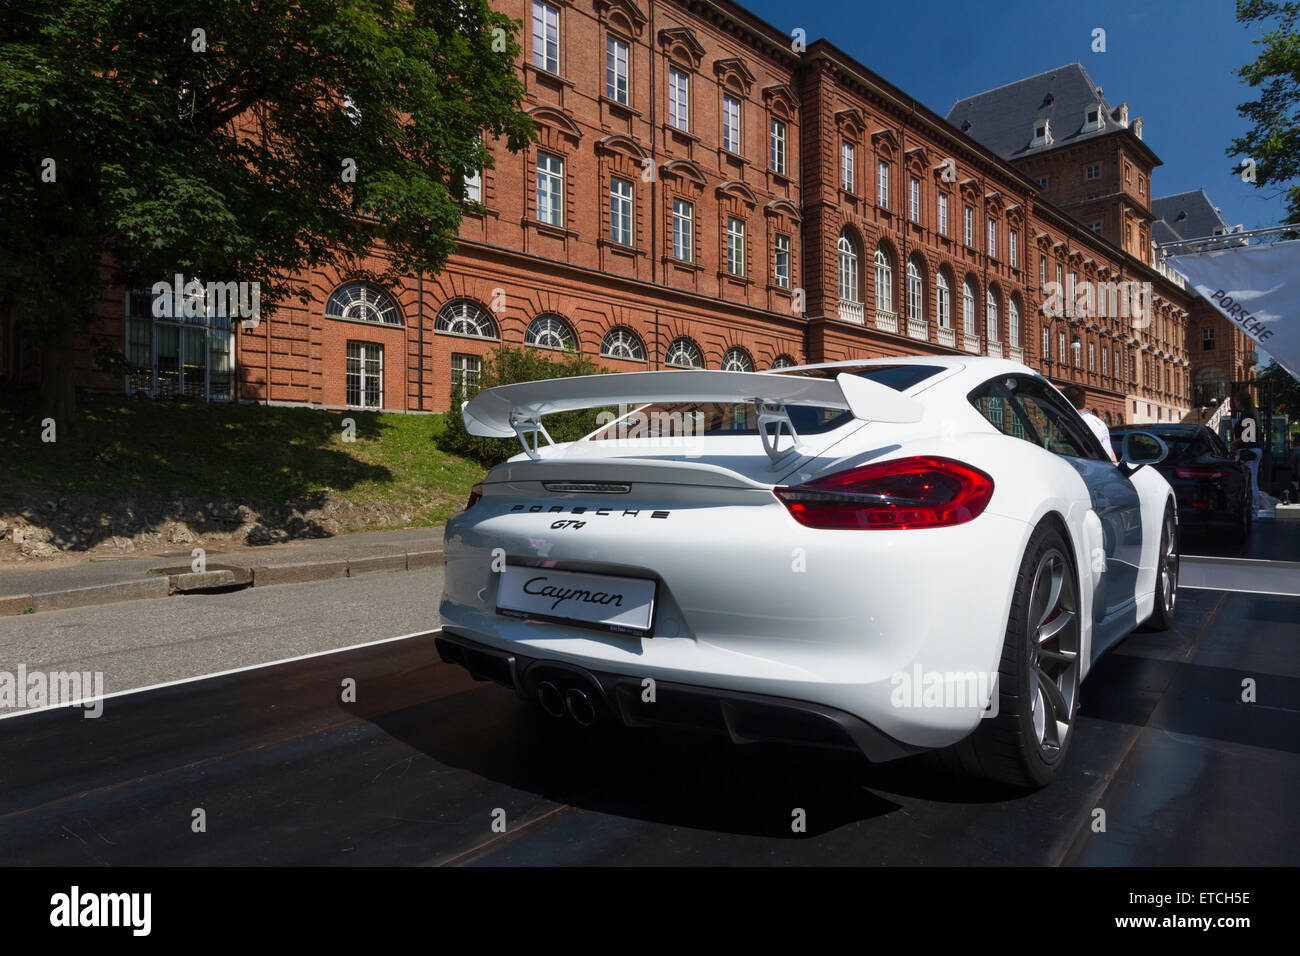 Turin Italy 11th June 2015 Back View Of Porsche Cayman Gt4